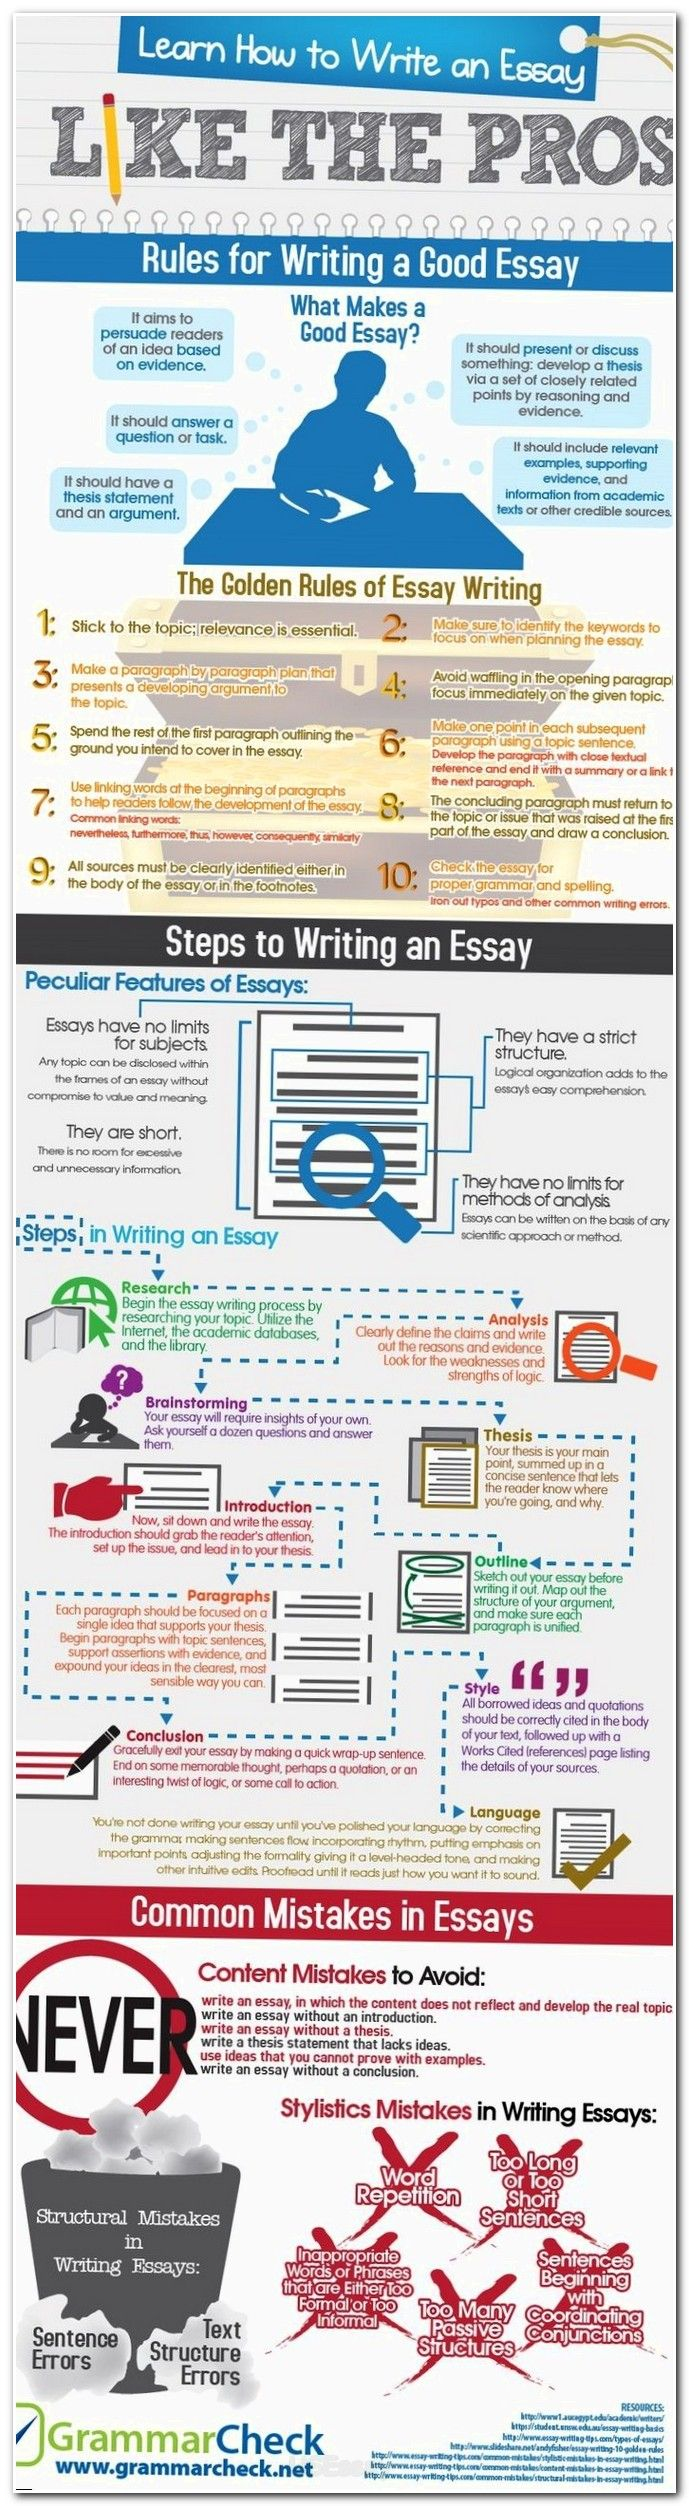 how to write an essay question